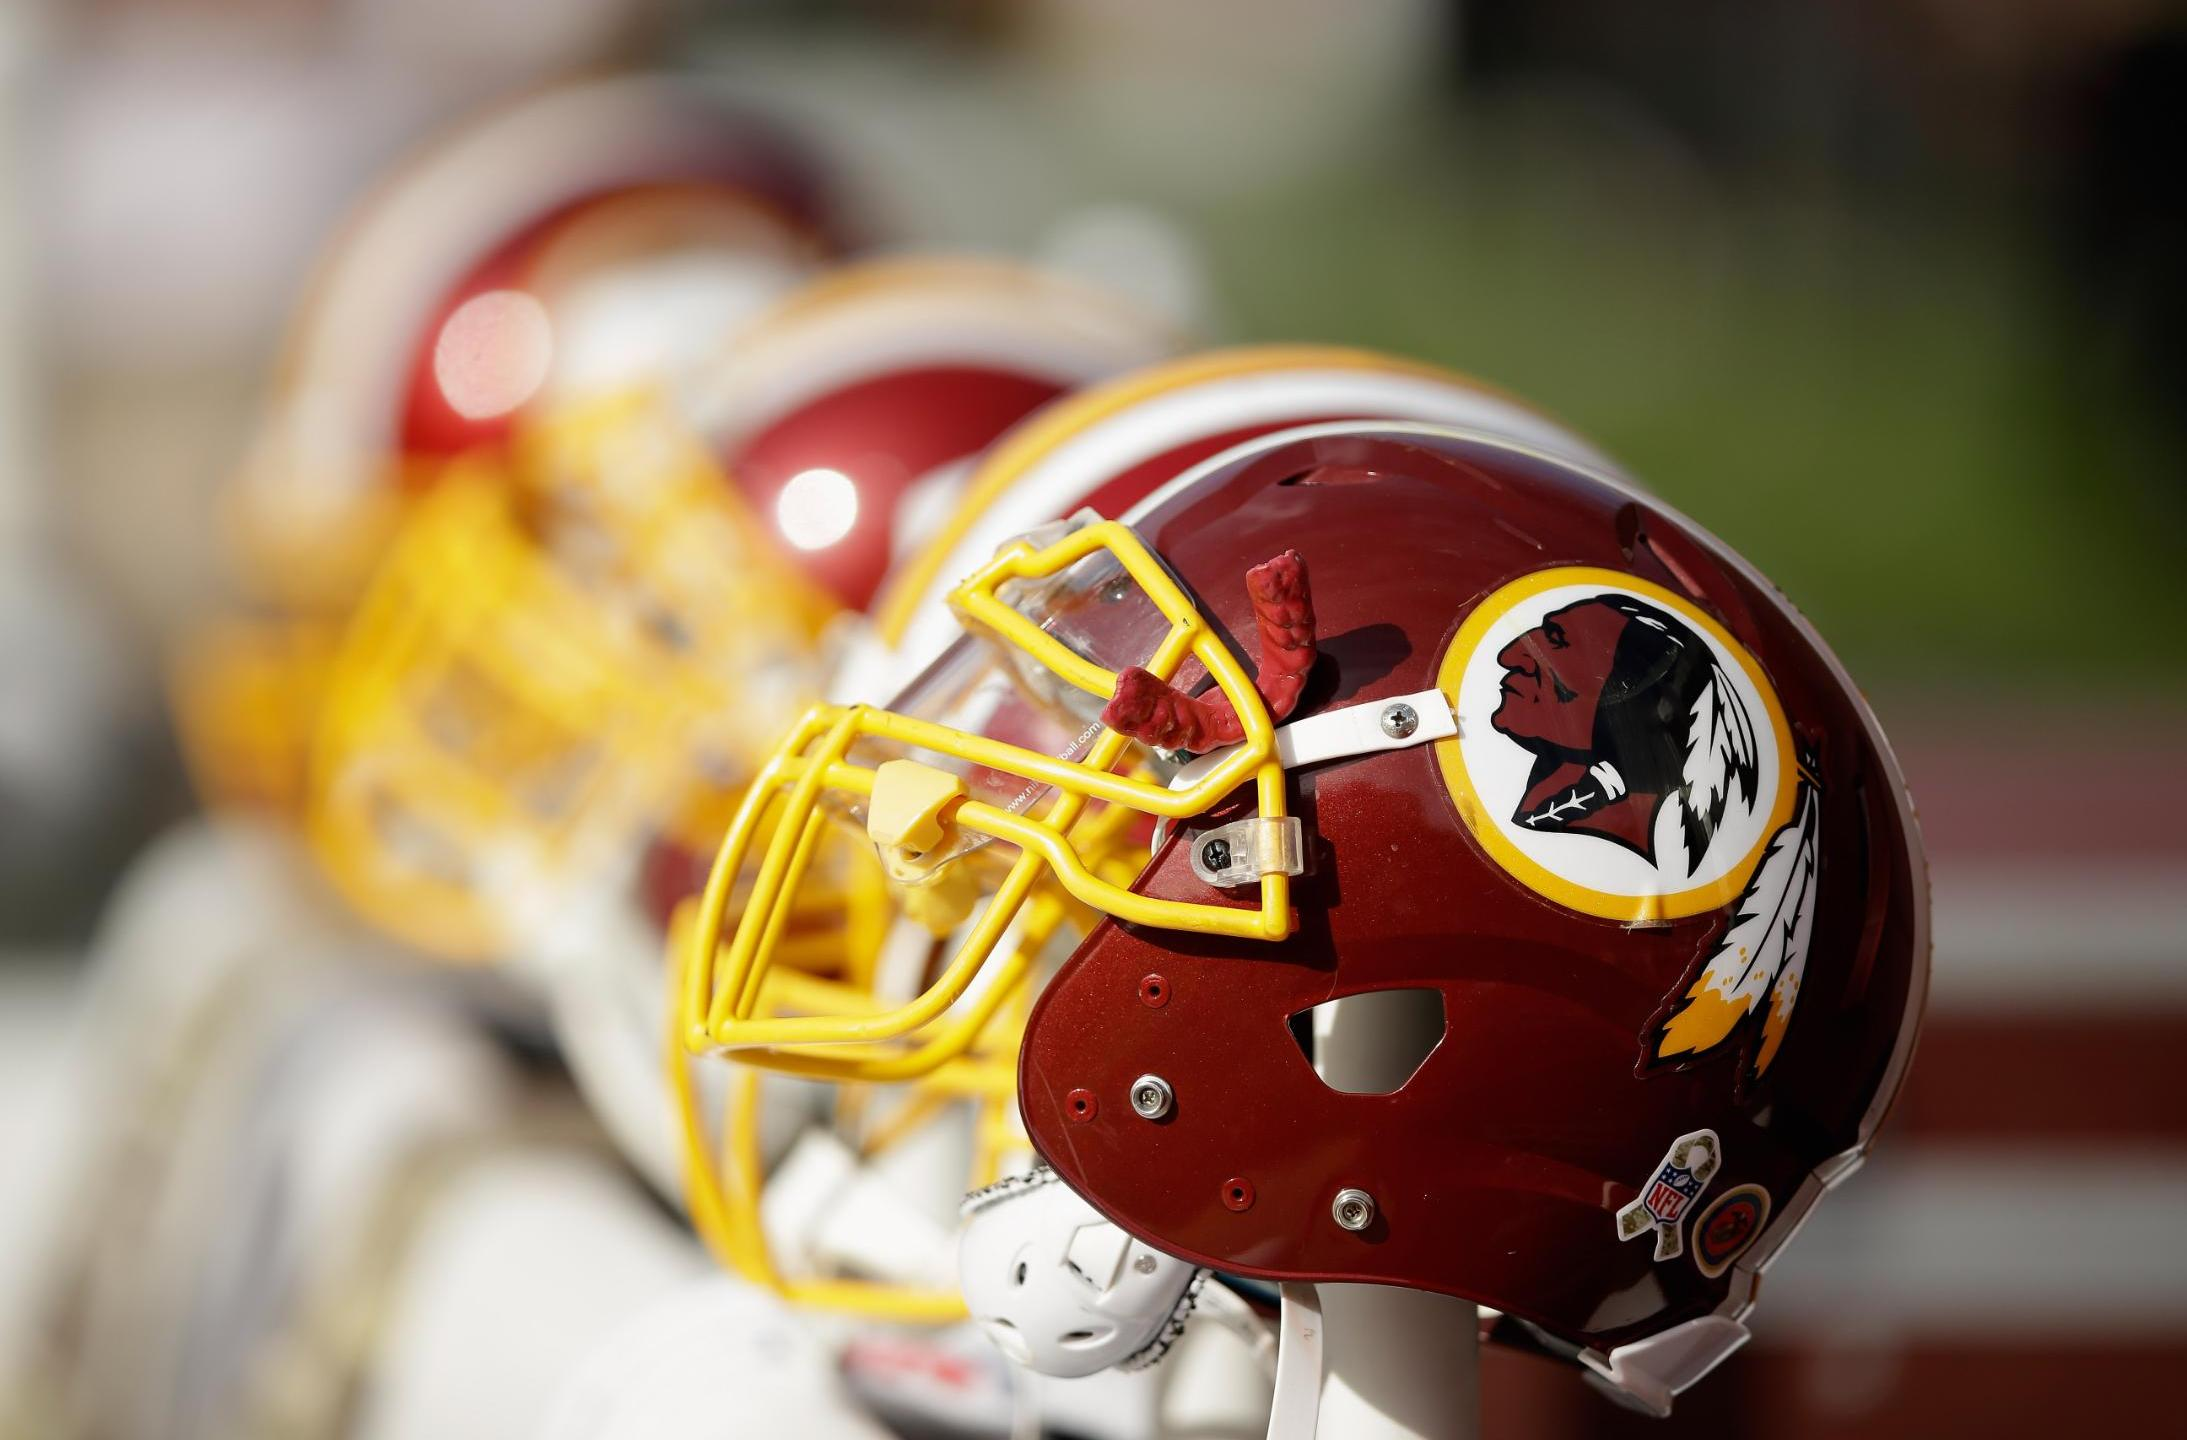 The Washington Redskins have launched an internal investigation after 15 former female employees and two journalists who covered the team accused team staffers of sexual harassment and verbal abuse. (Ezra Shaw/Getty Images via CNN)